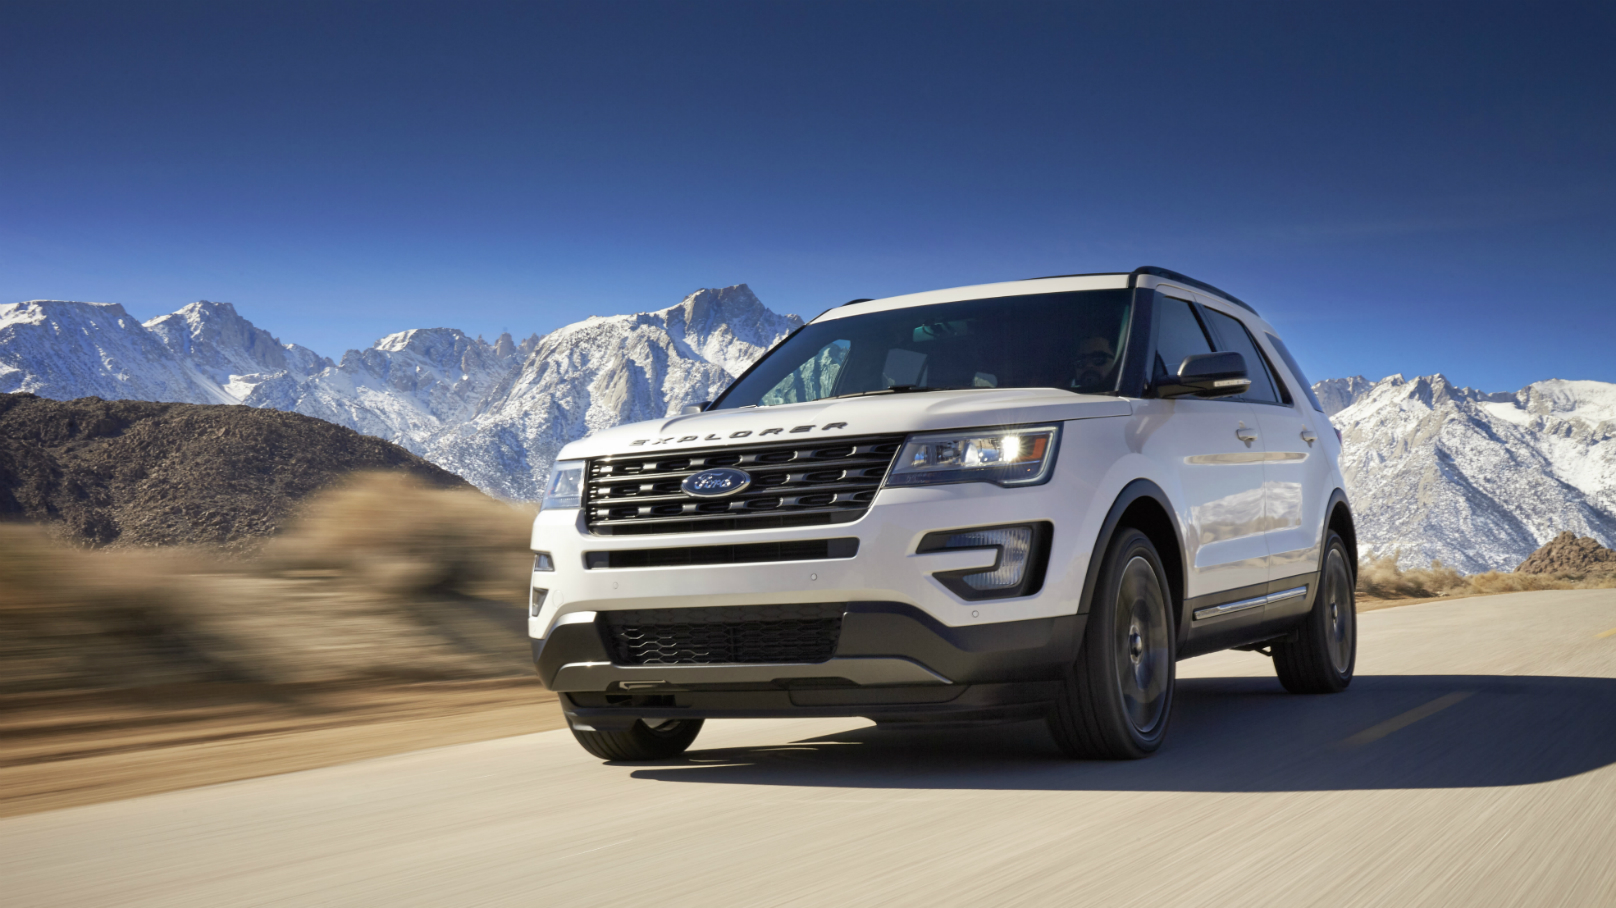 Least Reliable Cars 2017 Ford Explorer